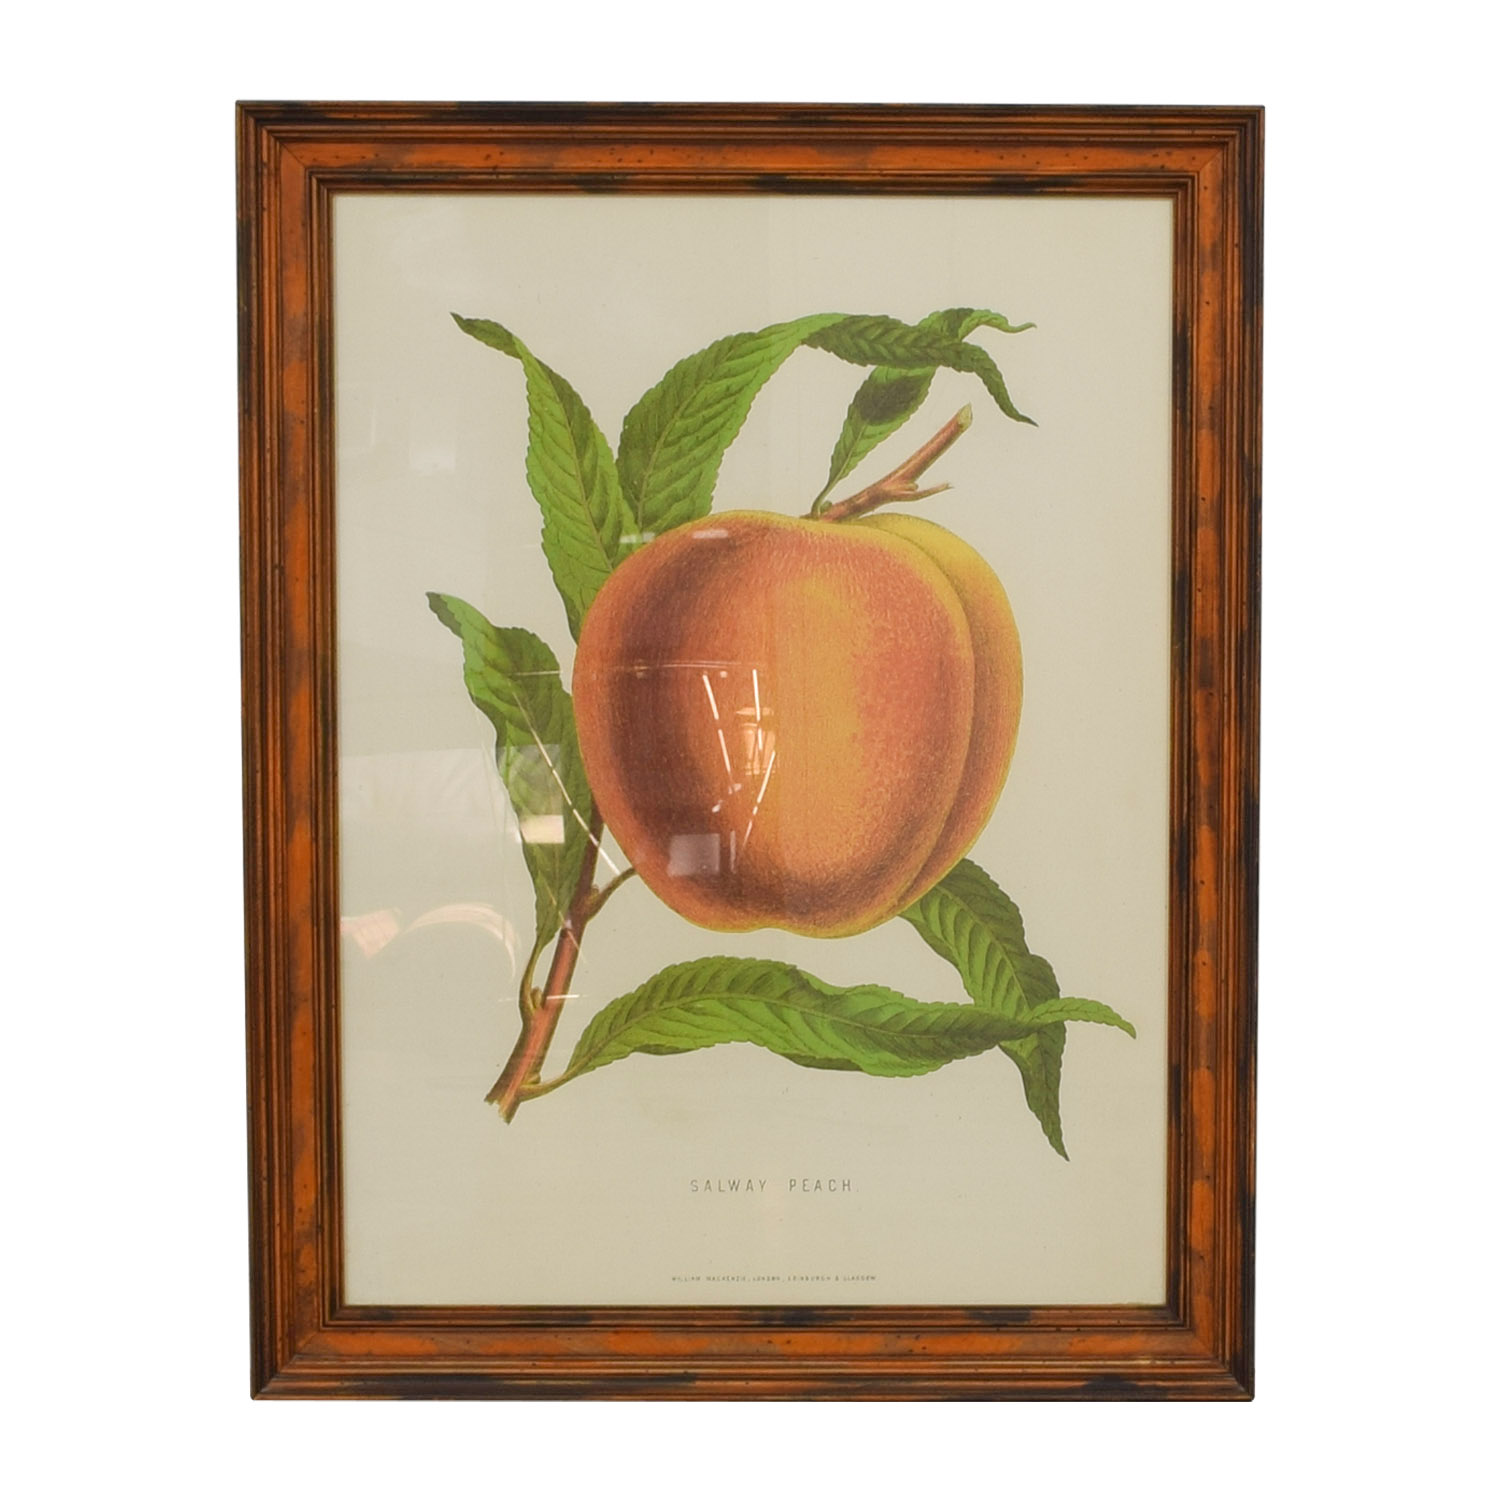 William Mackenzie Salway Peach Framed Print discount